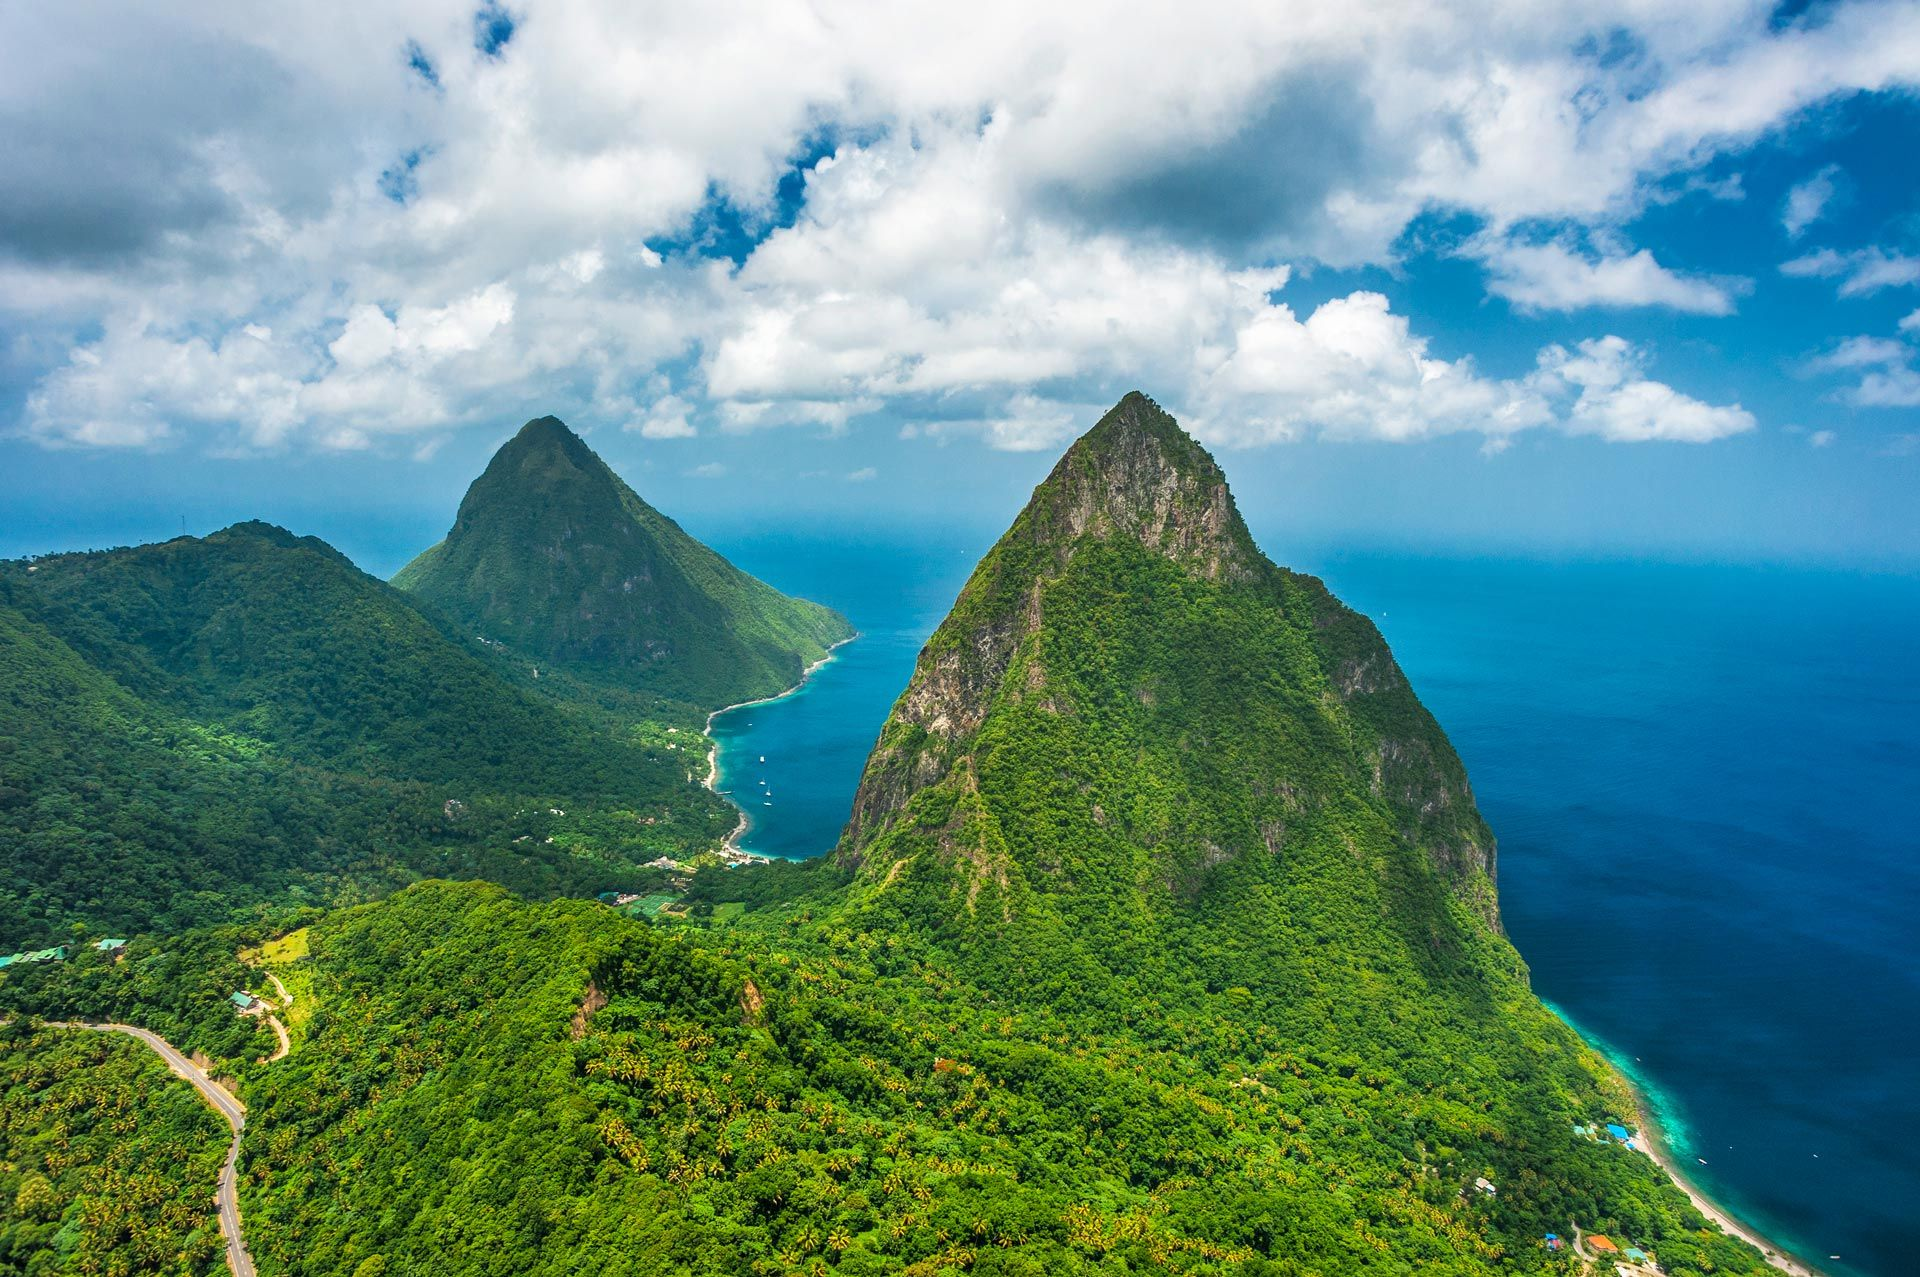 St. Lucia Pitons Mountains